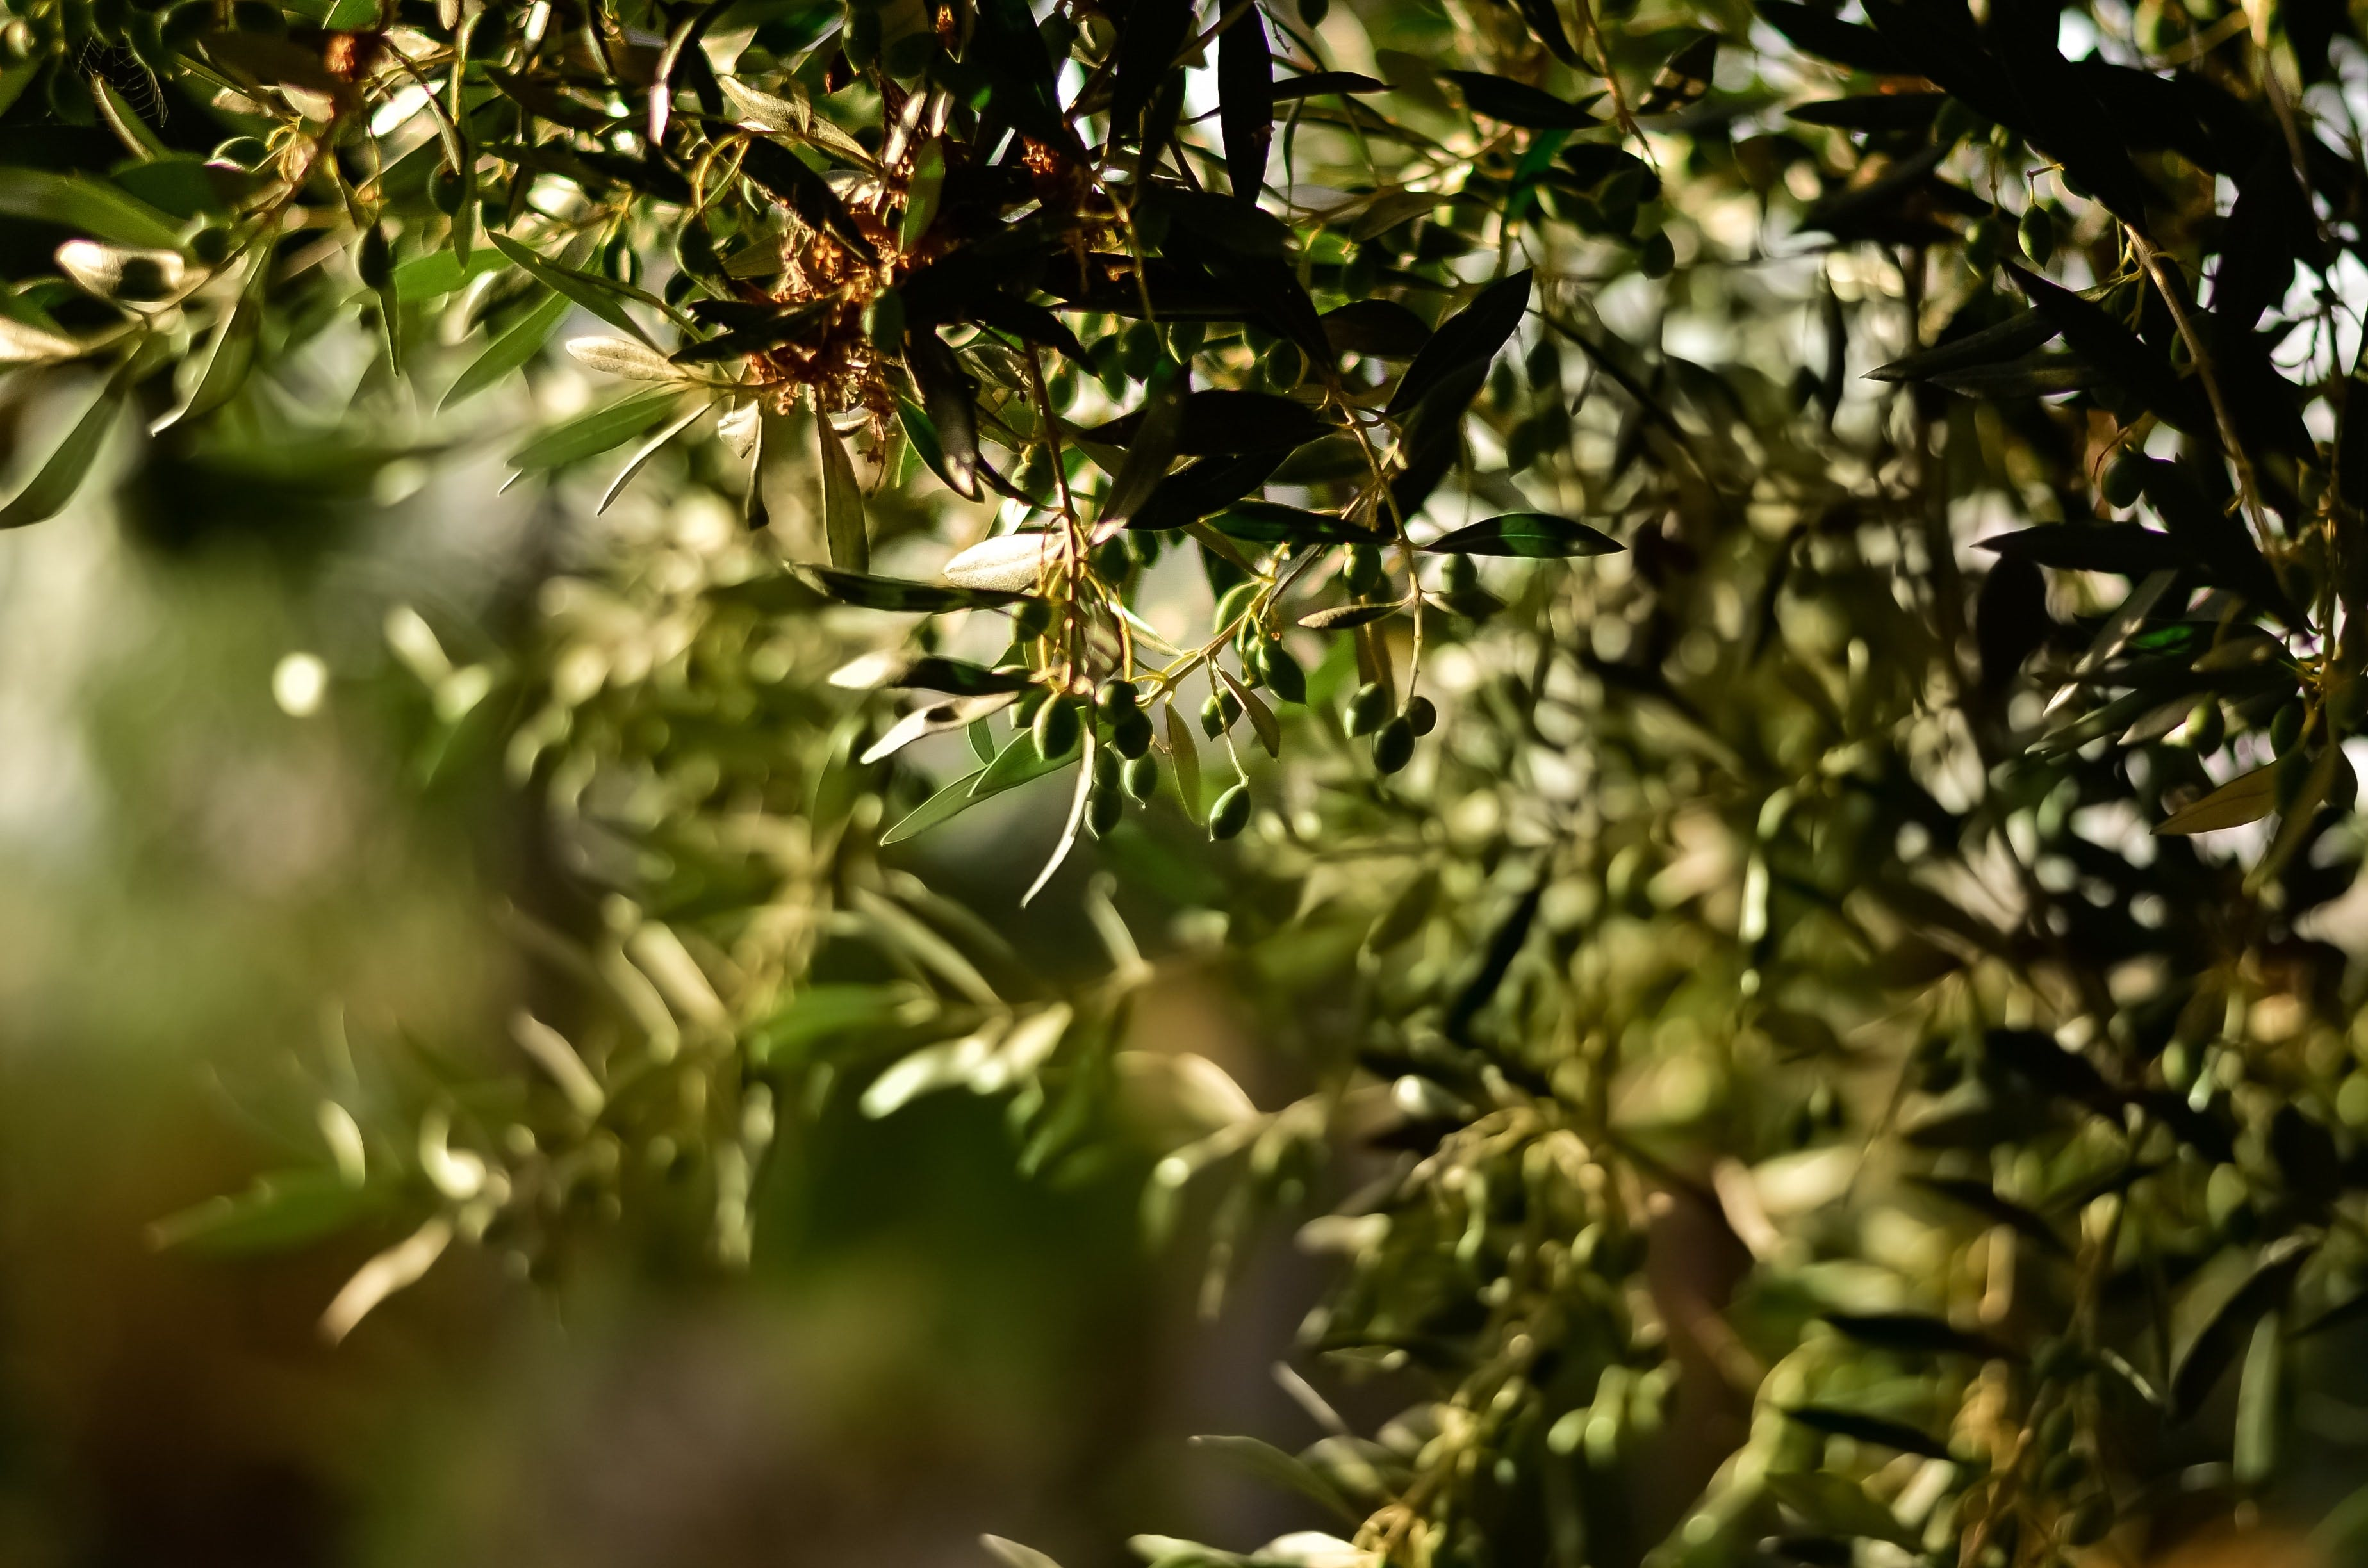 Focus Photography of Green Plants